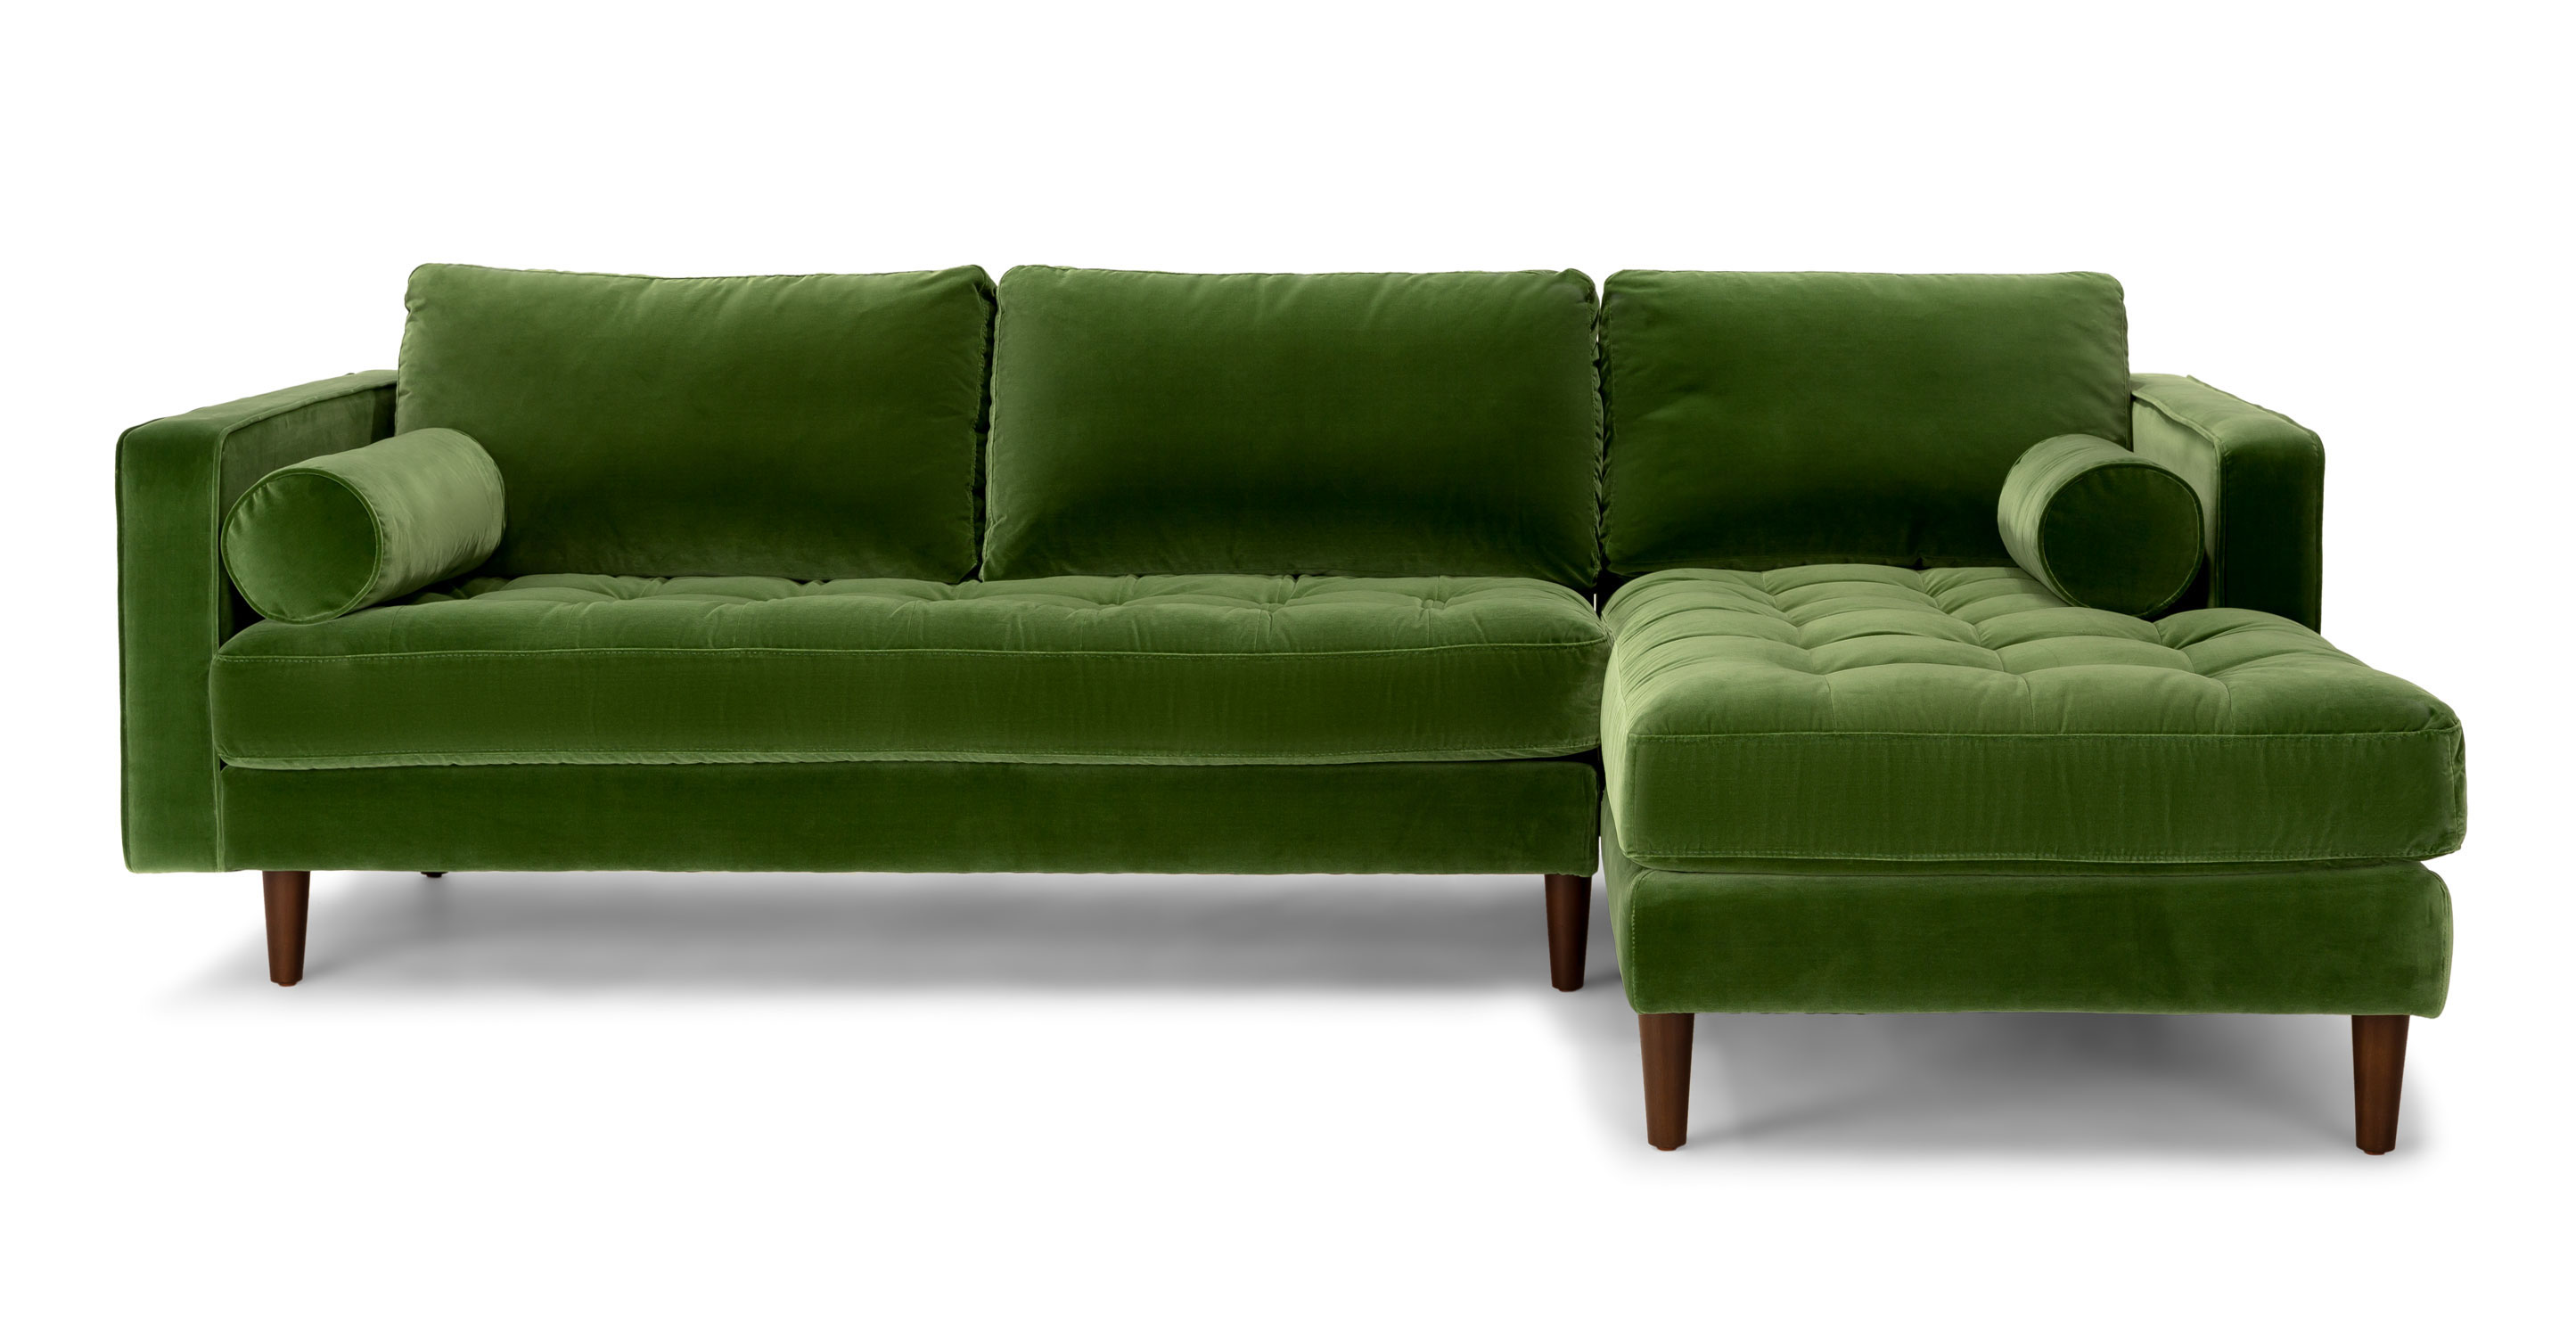 Cheap Sectional Sofa Green Velvet Right Sectional Tufted Article Sven Modern Furniture